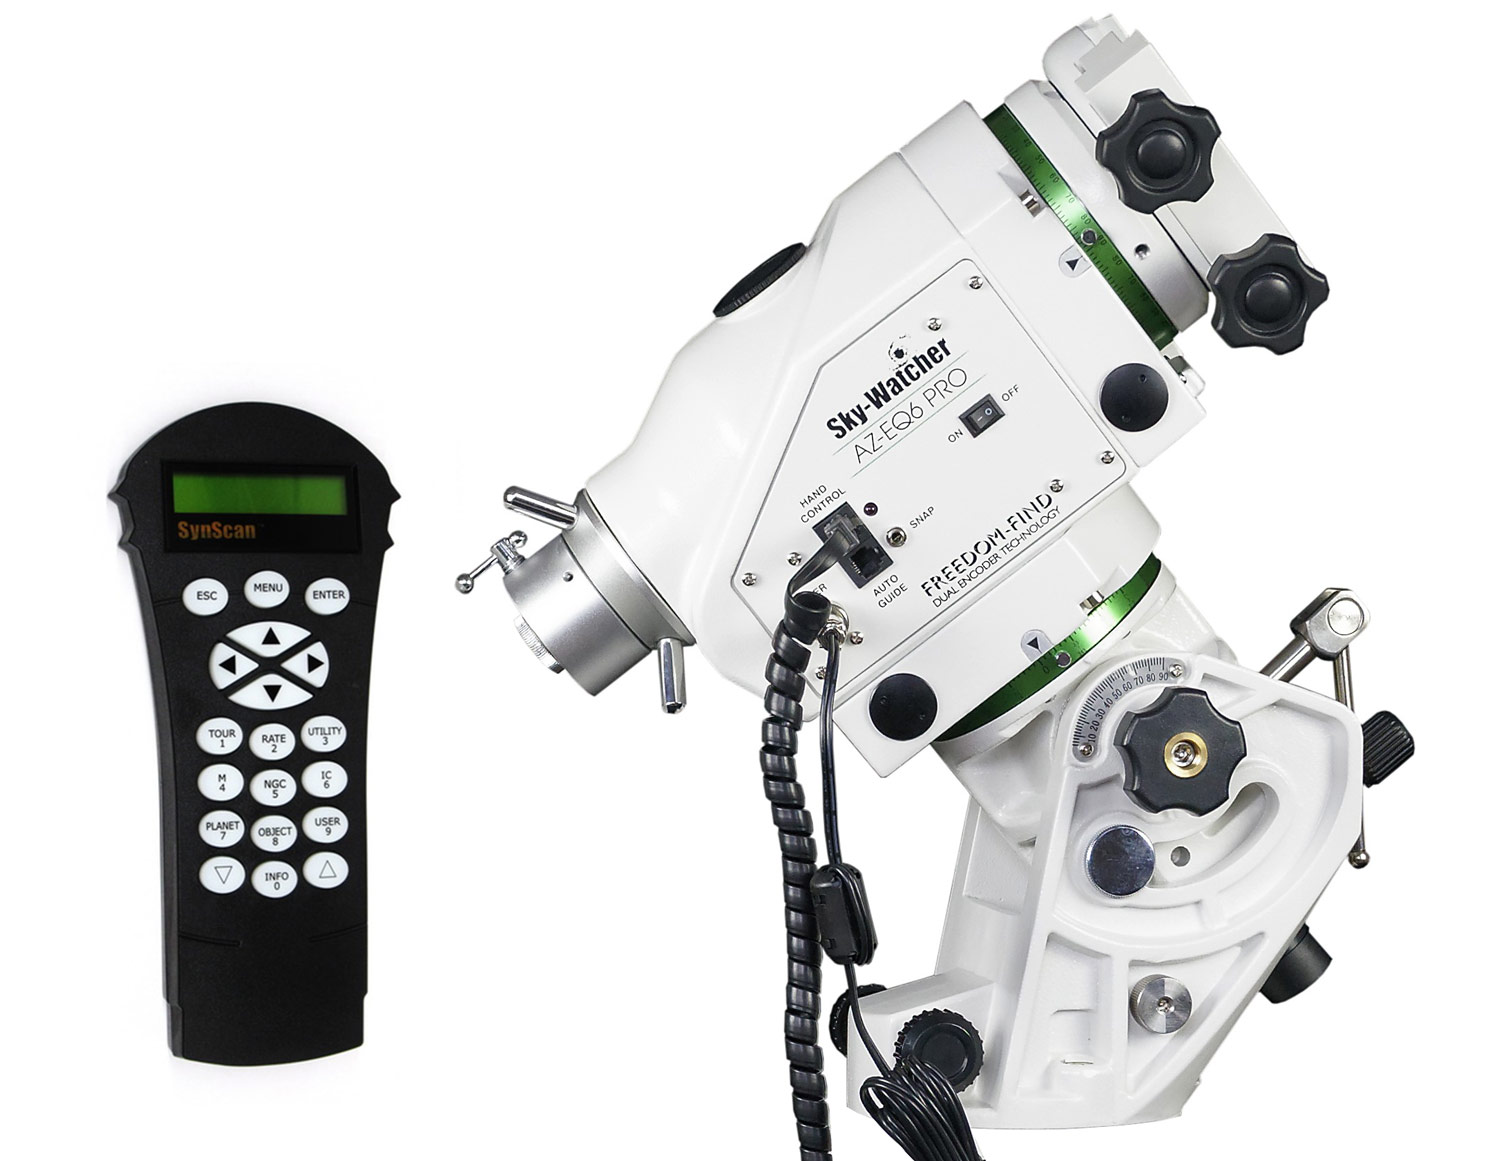 AZ-EQ6-goto head with SynScan GoTo controller (without counterweight,  without tripod)